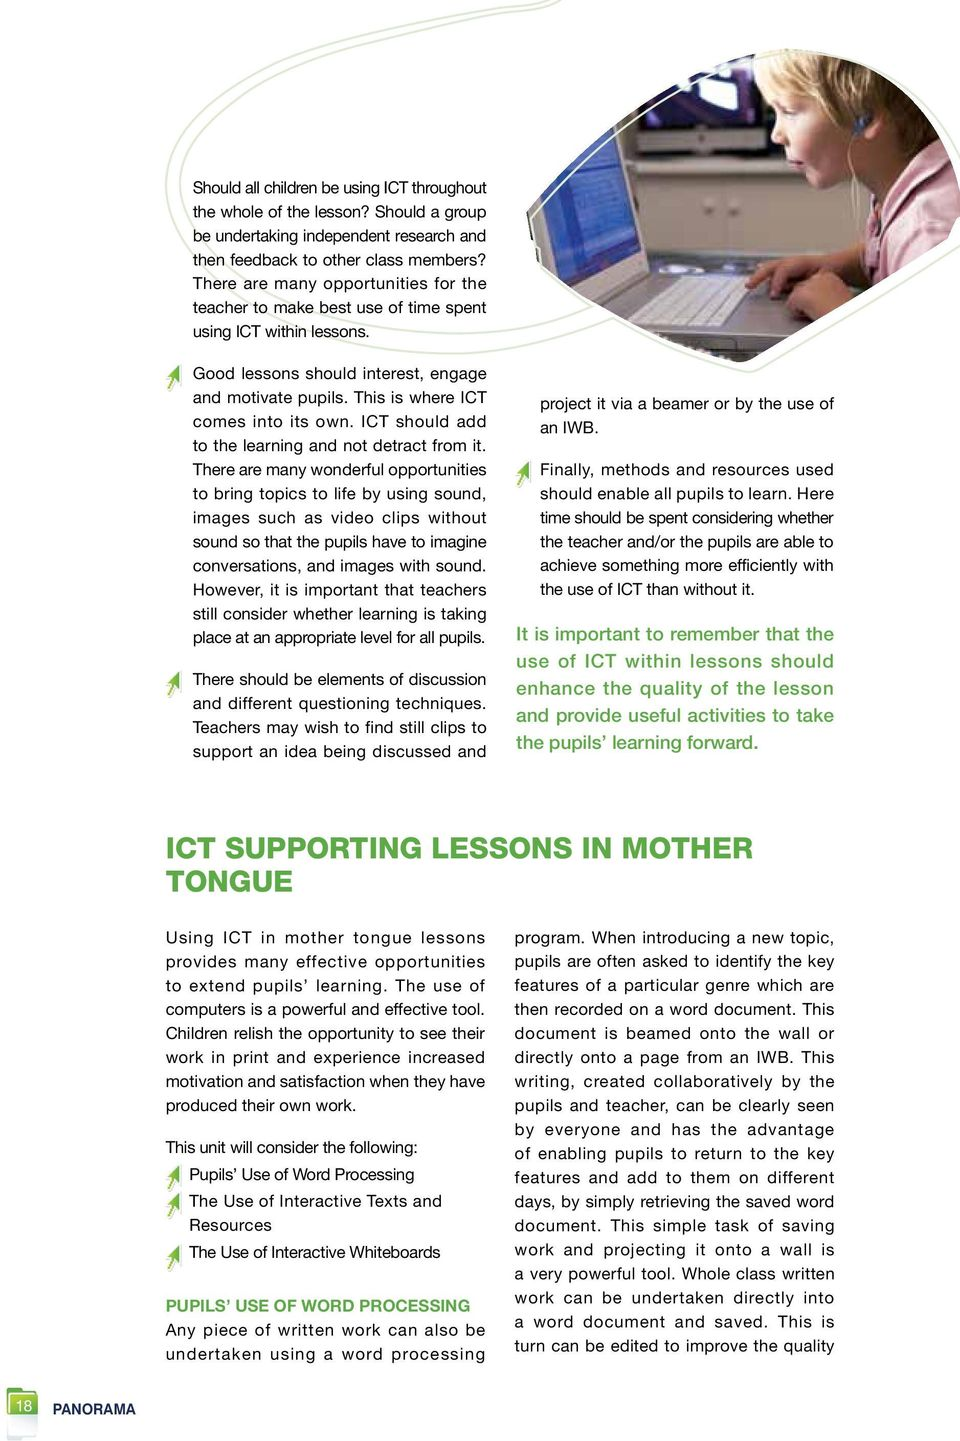 ICT should add to the learning and not detract from it.